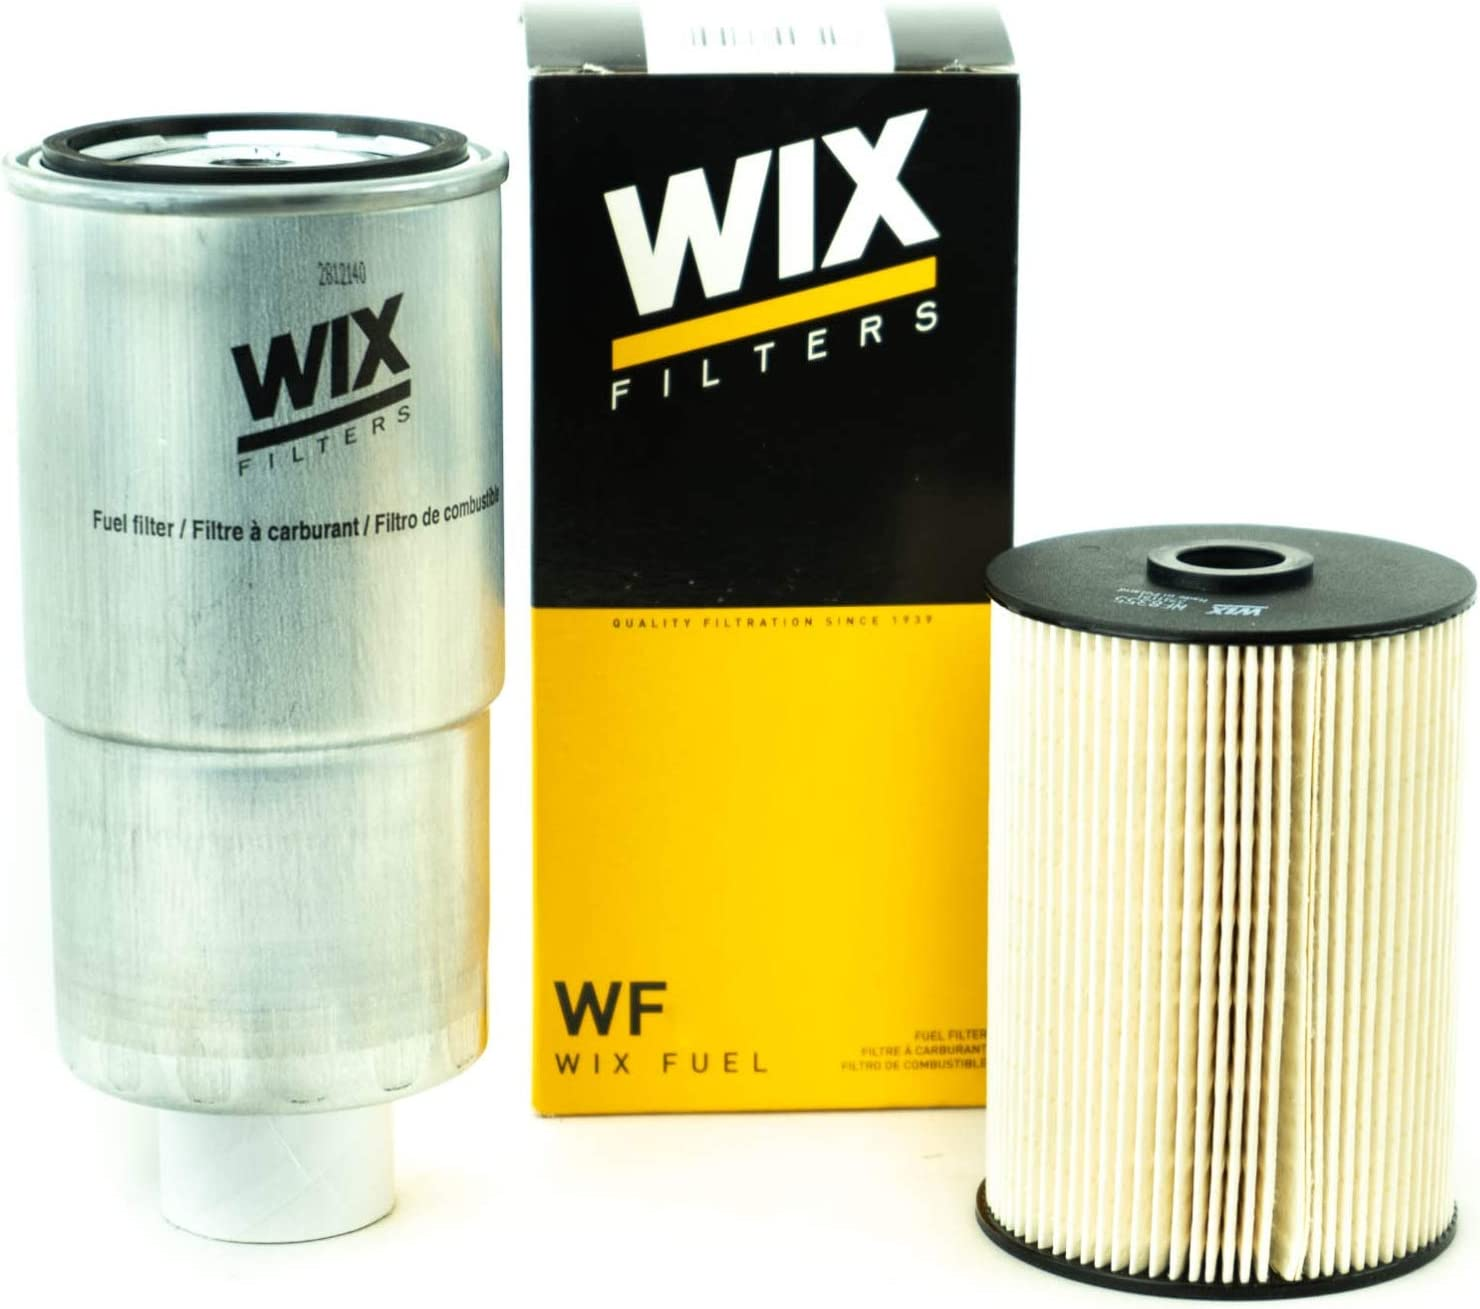 Wix WF8426 Fuel Filter free New item shipping